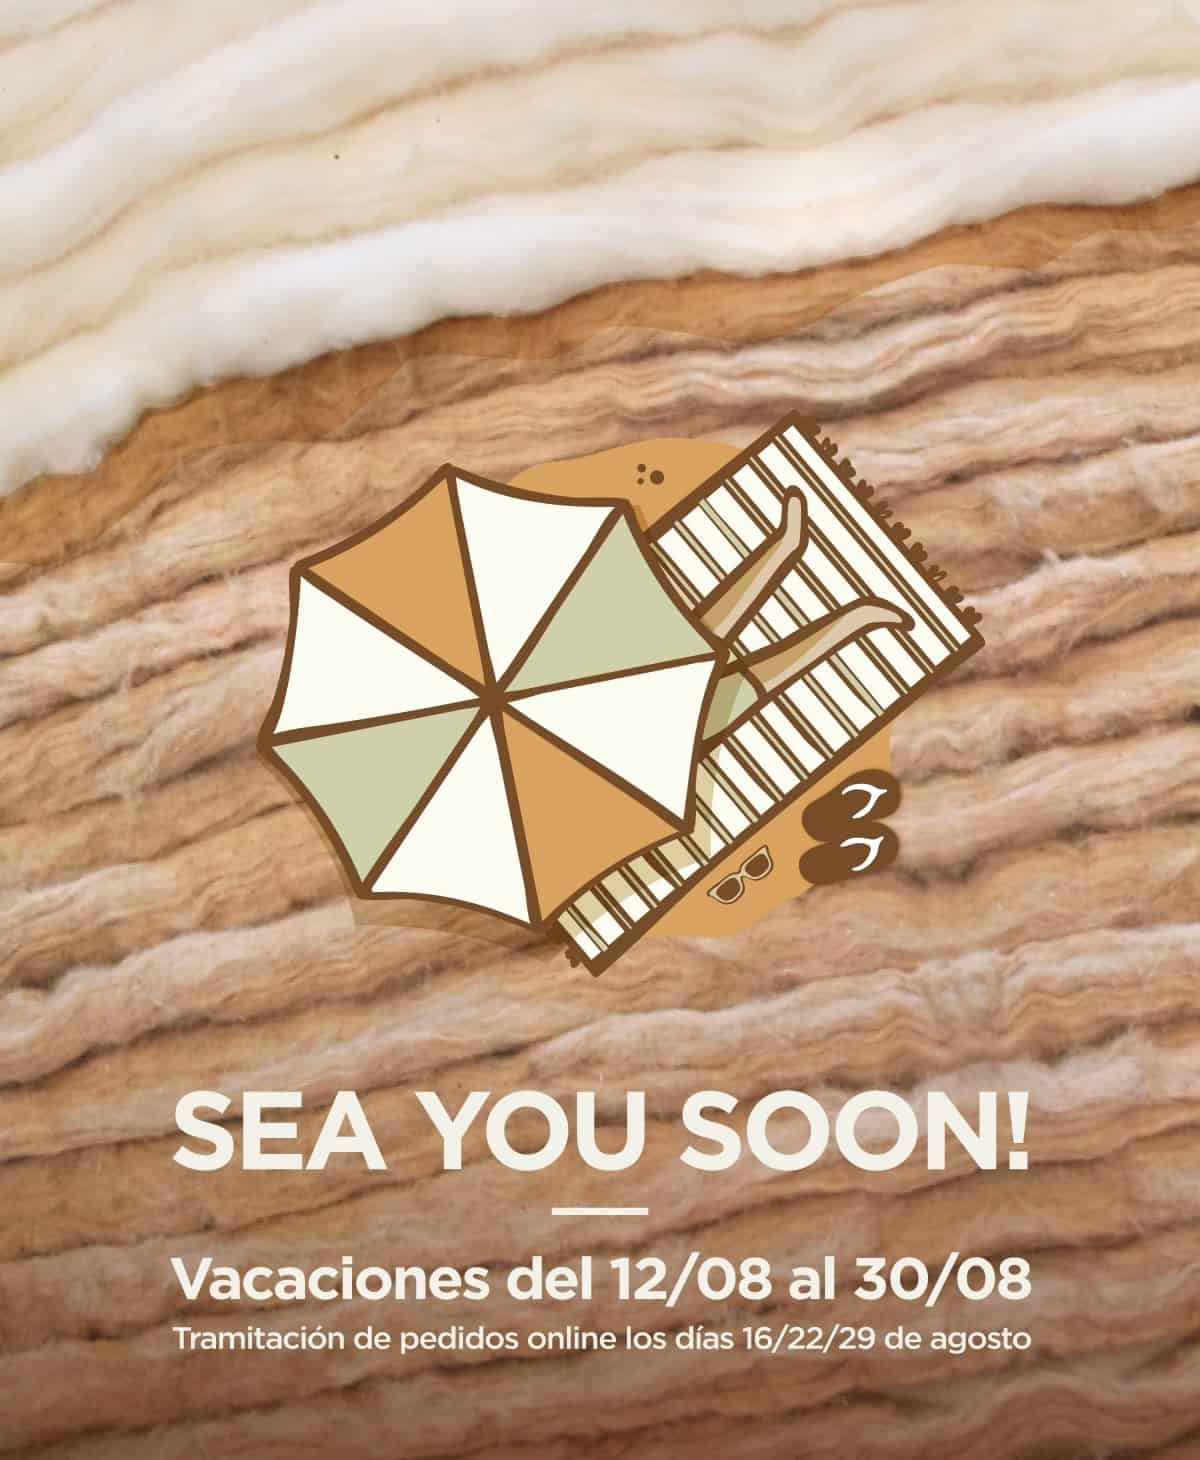 ¡Sea you soon! Vacaciones OCC 12 al 30 de agosto